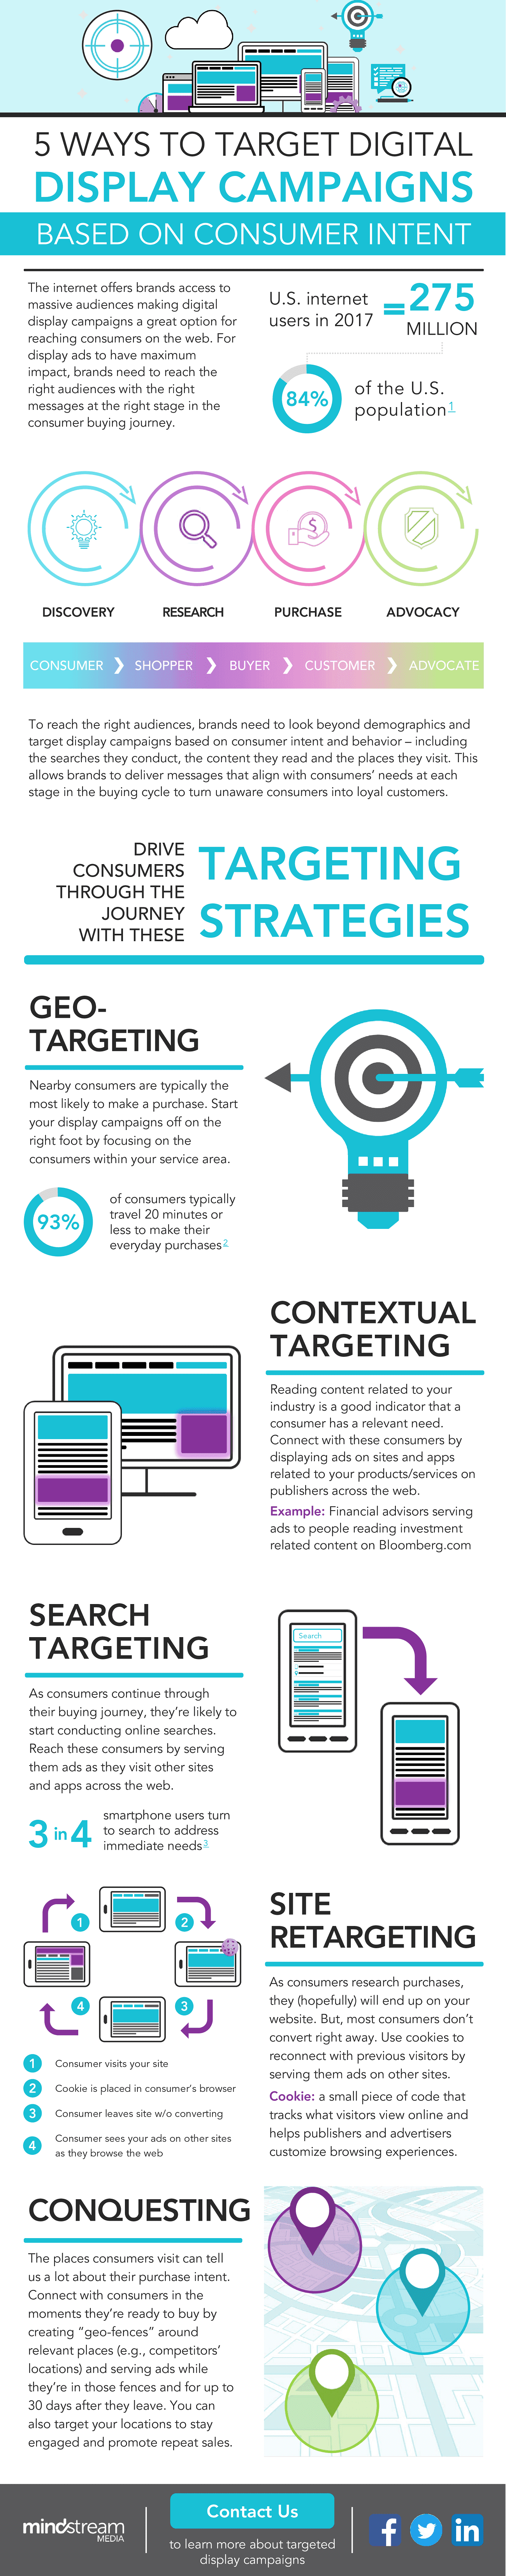 5 Ways to Target Digital Display Campaigns Based on Consumer Intent [Infographic] | Social Media Today